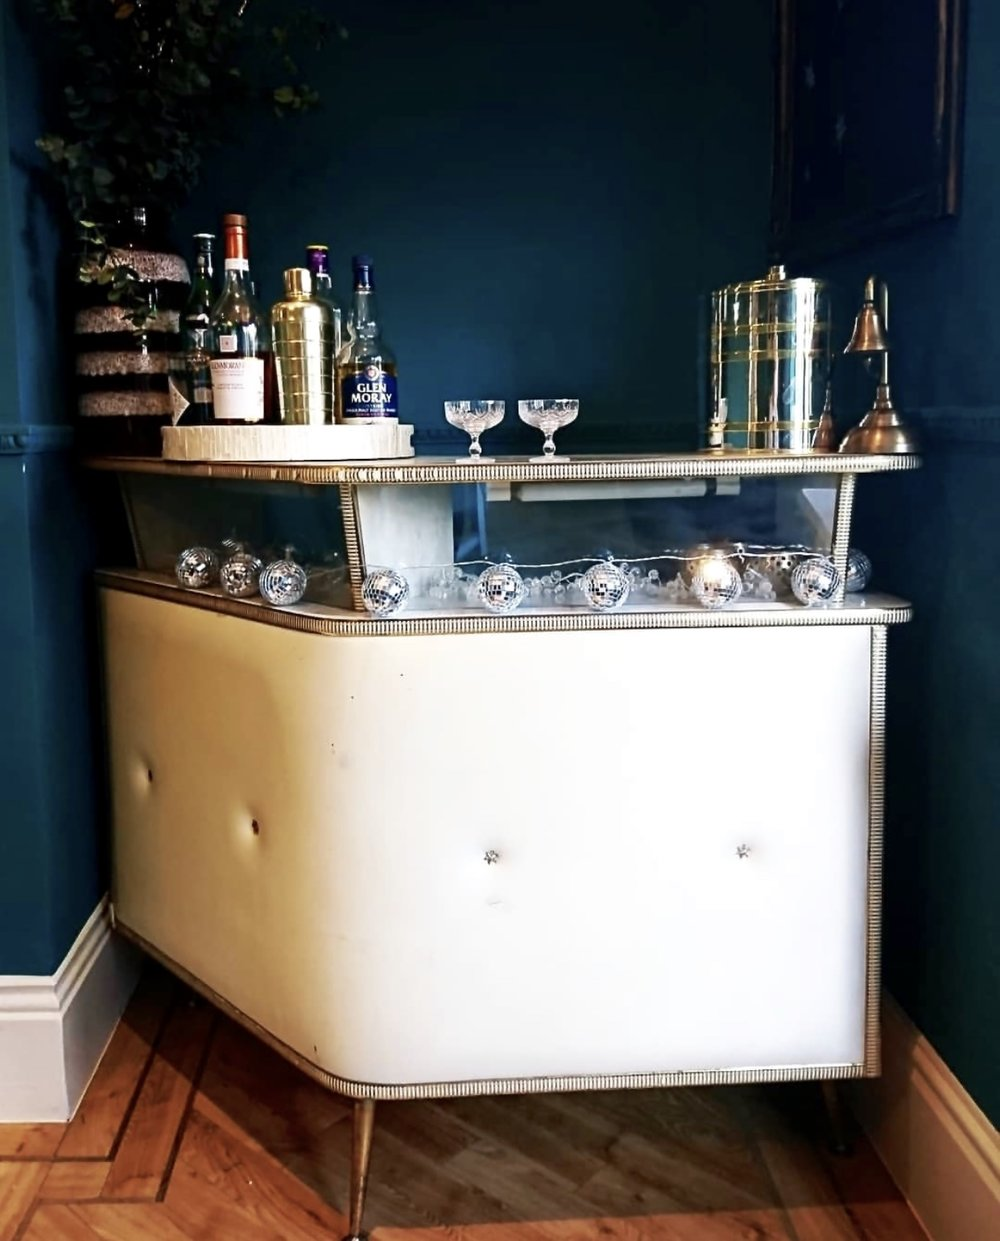 Jemma picked up this retro bar off eBay and it sits proudly in the corner of her dining room..... She tells me they've started drinking a lot of Martinis since they've had it..... I'll have mine shaken not stirred please ;)    @fikaandmooch